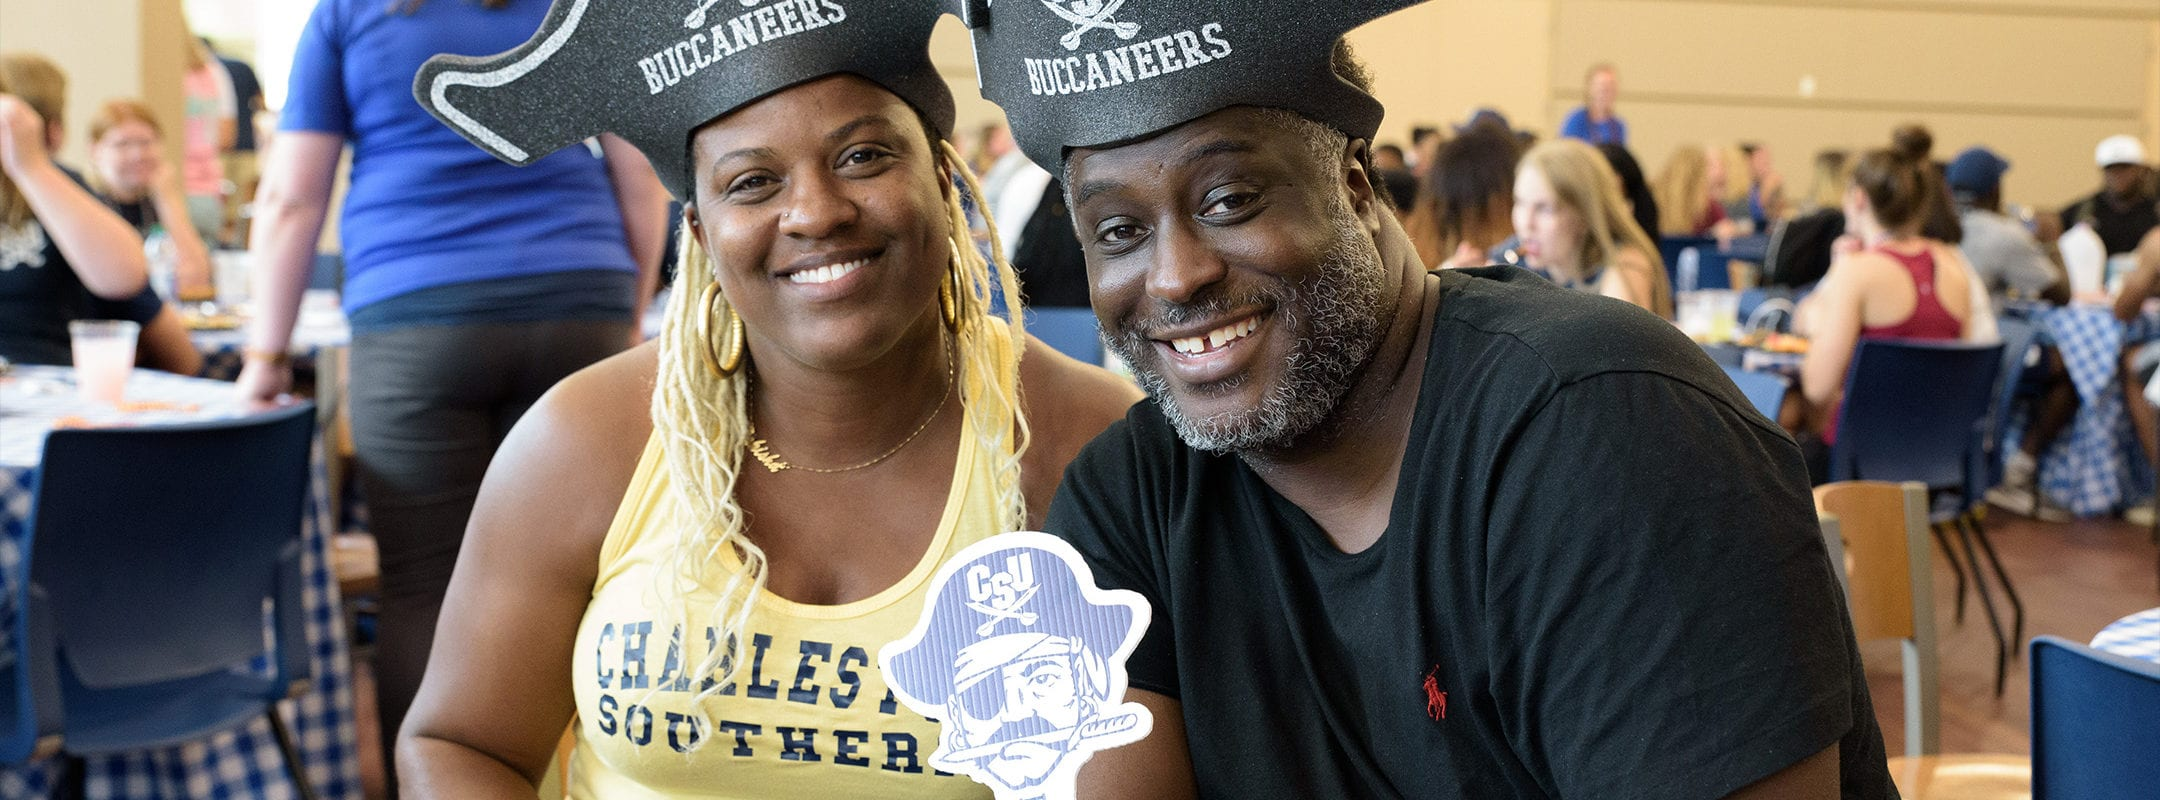 Parents of a CSU student. They are wearing CSU Buccaneers pirate hats.